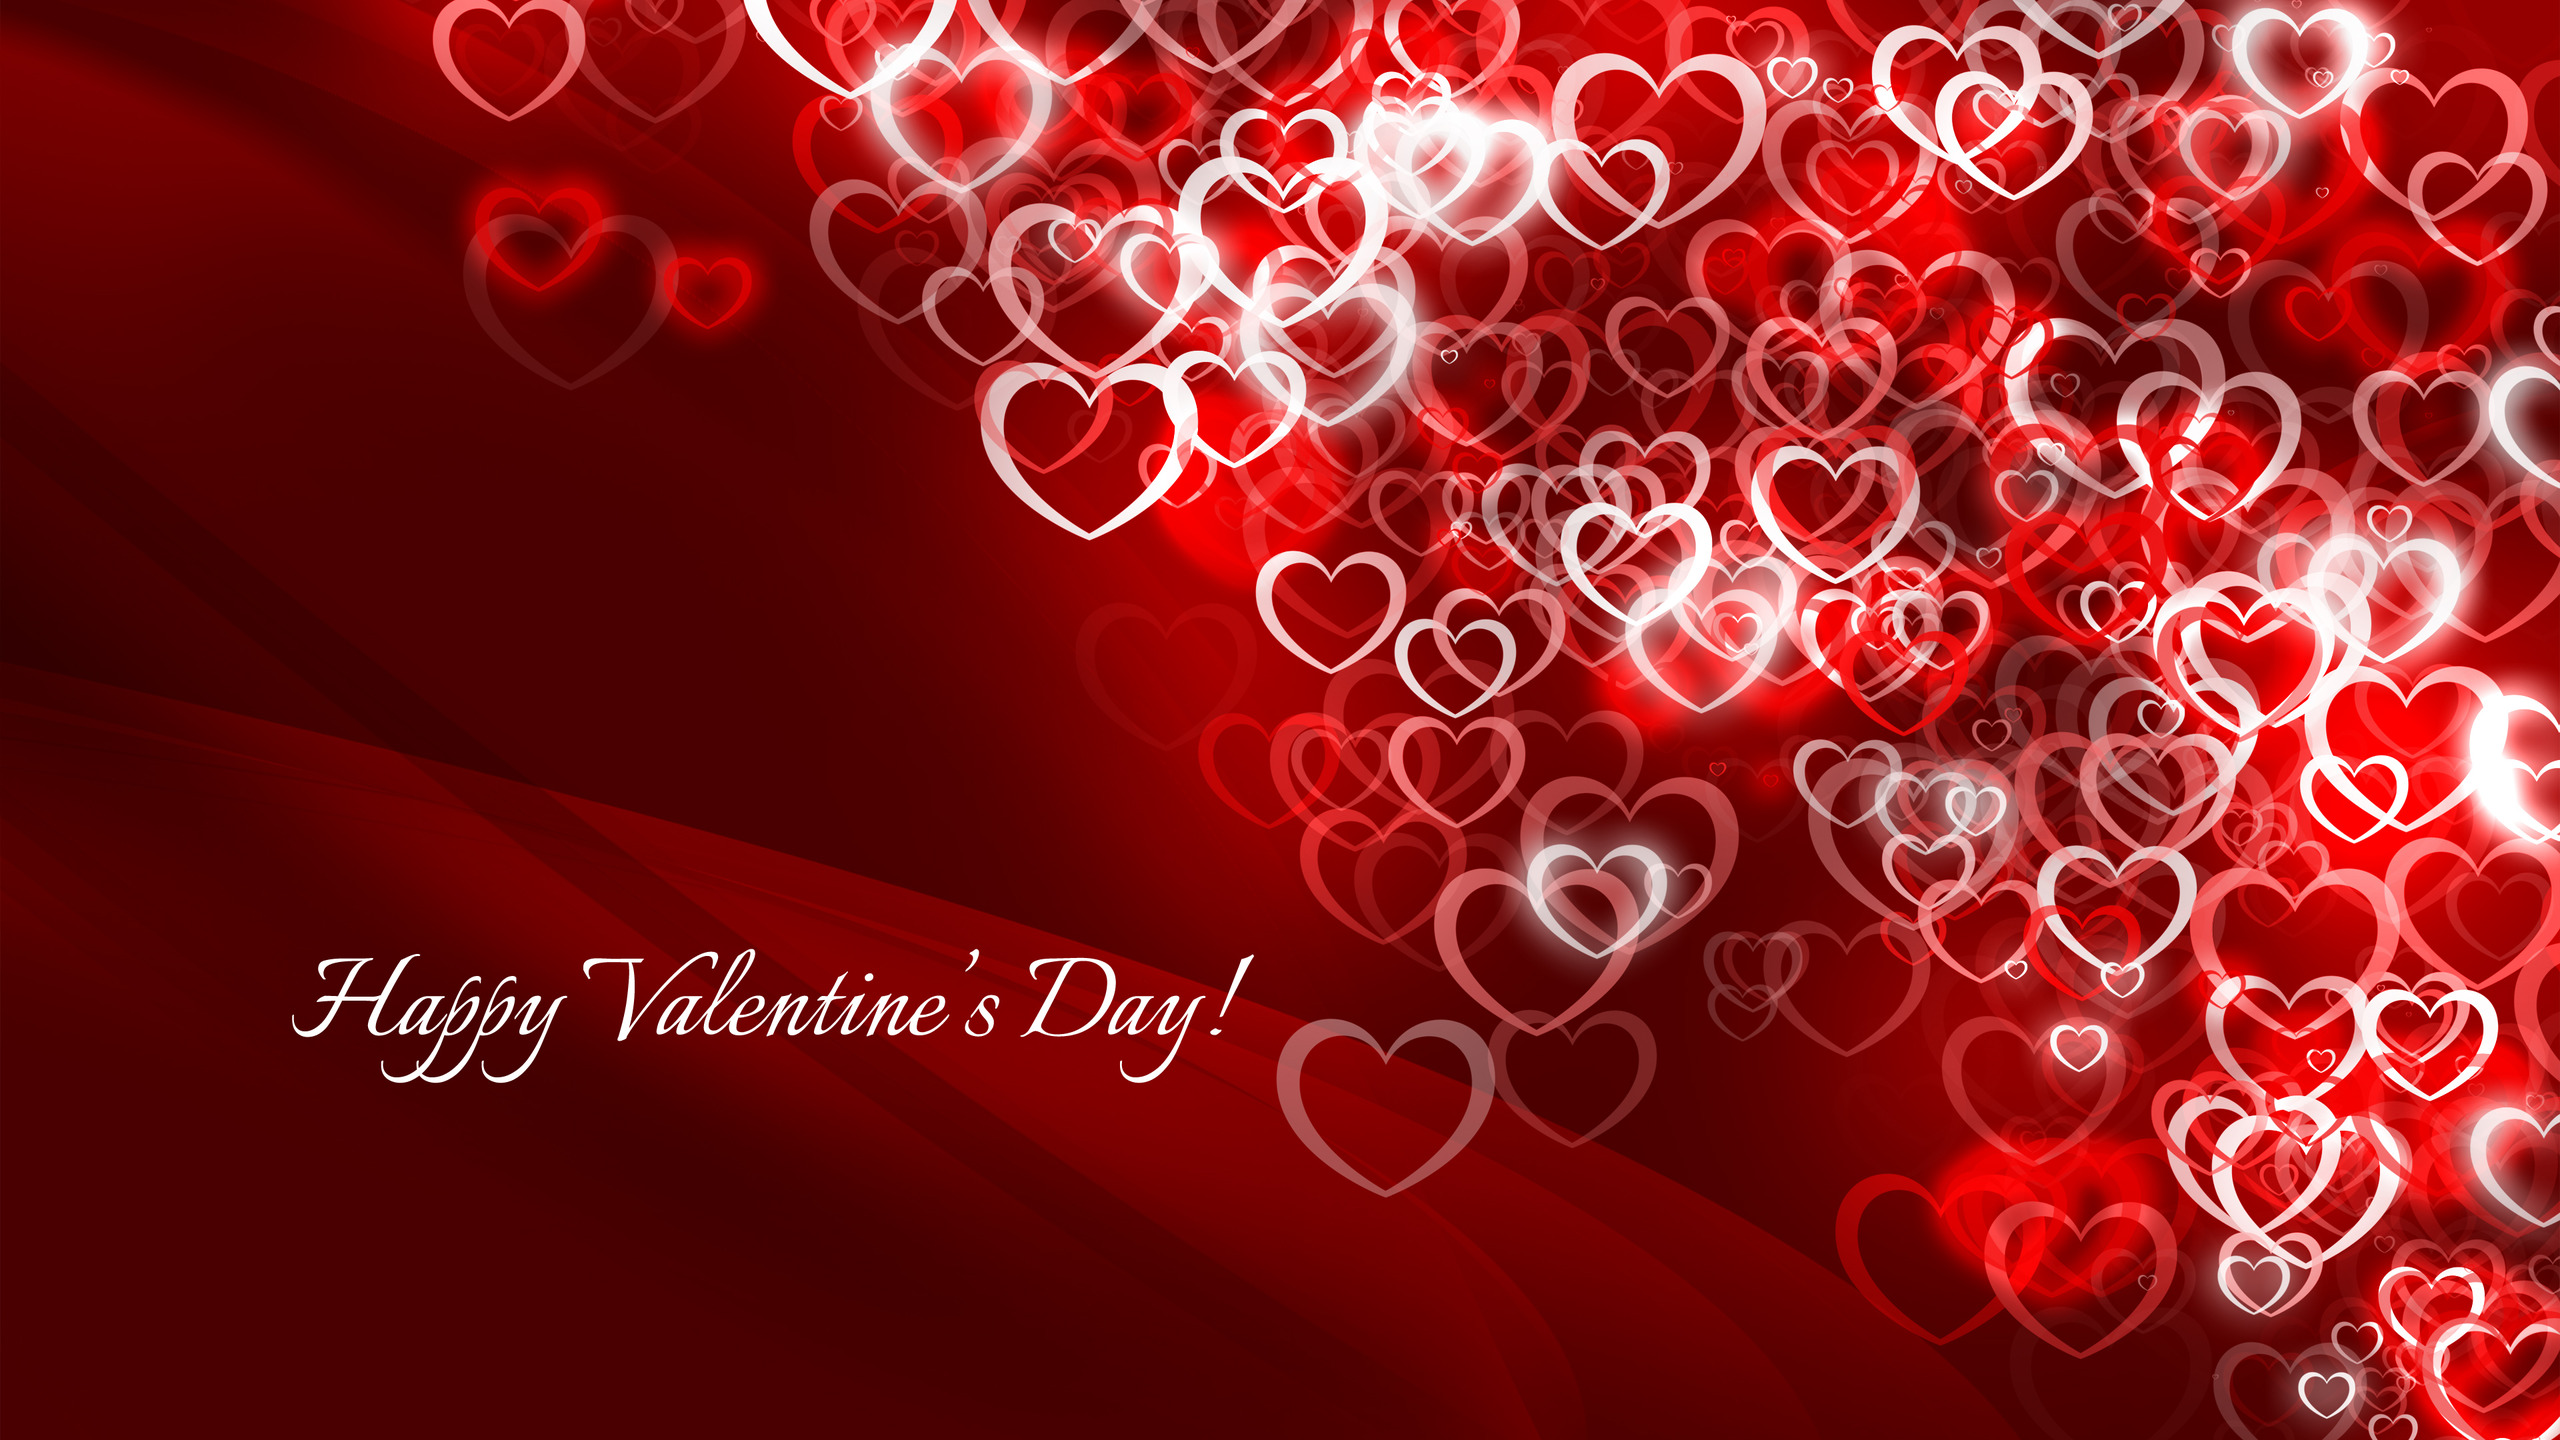 valentines day wallpapers high quality download free - Valentines Day Desktop Background